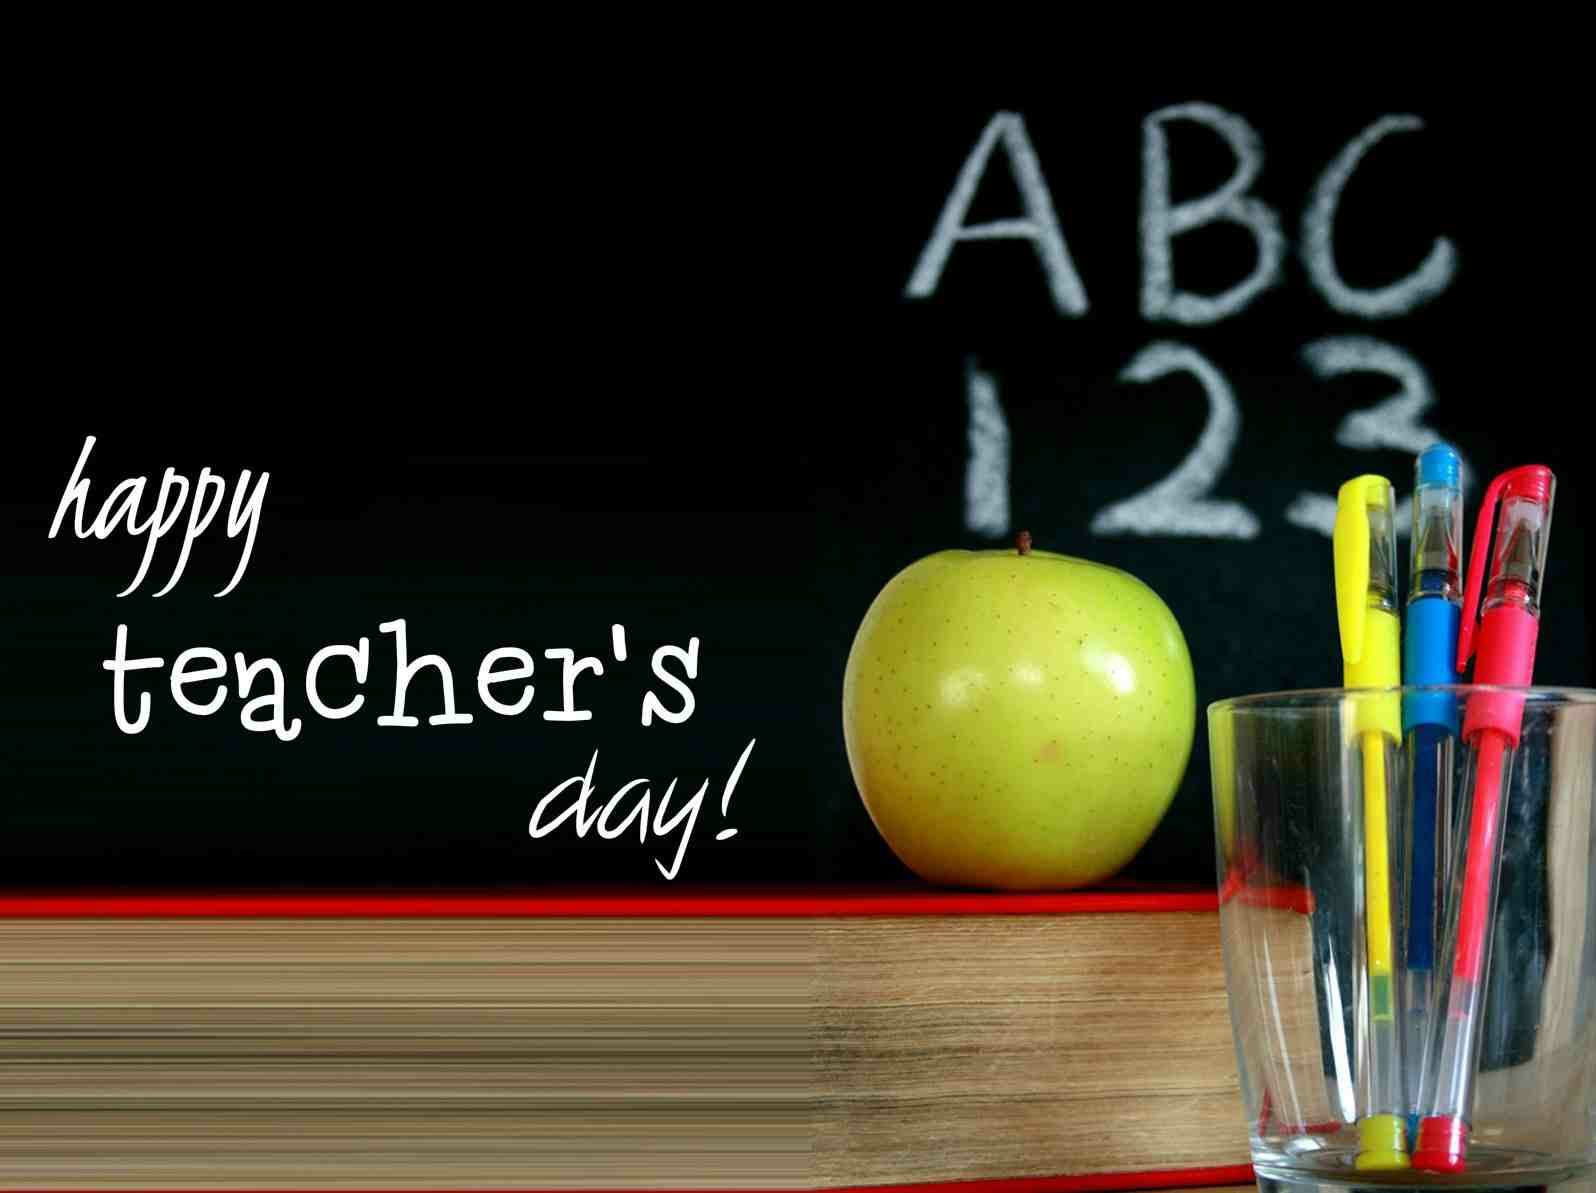 Happy world teachers day hd wallpaper altavistaventures Choice Image